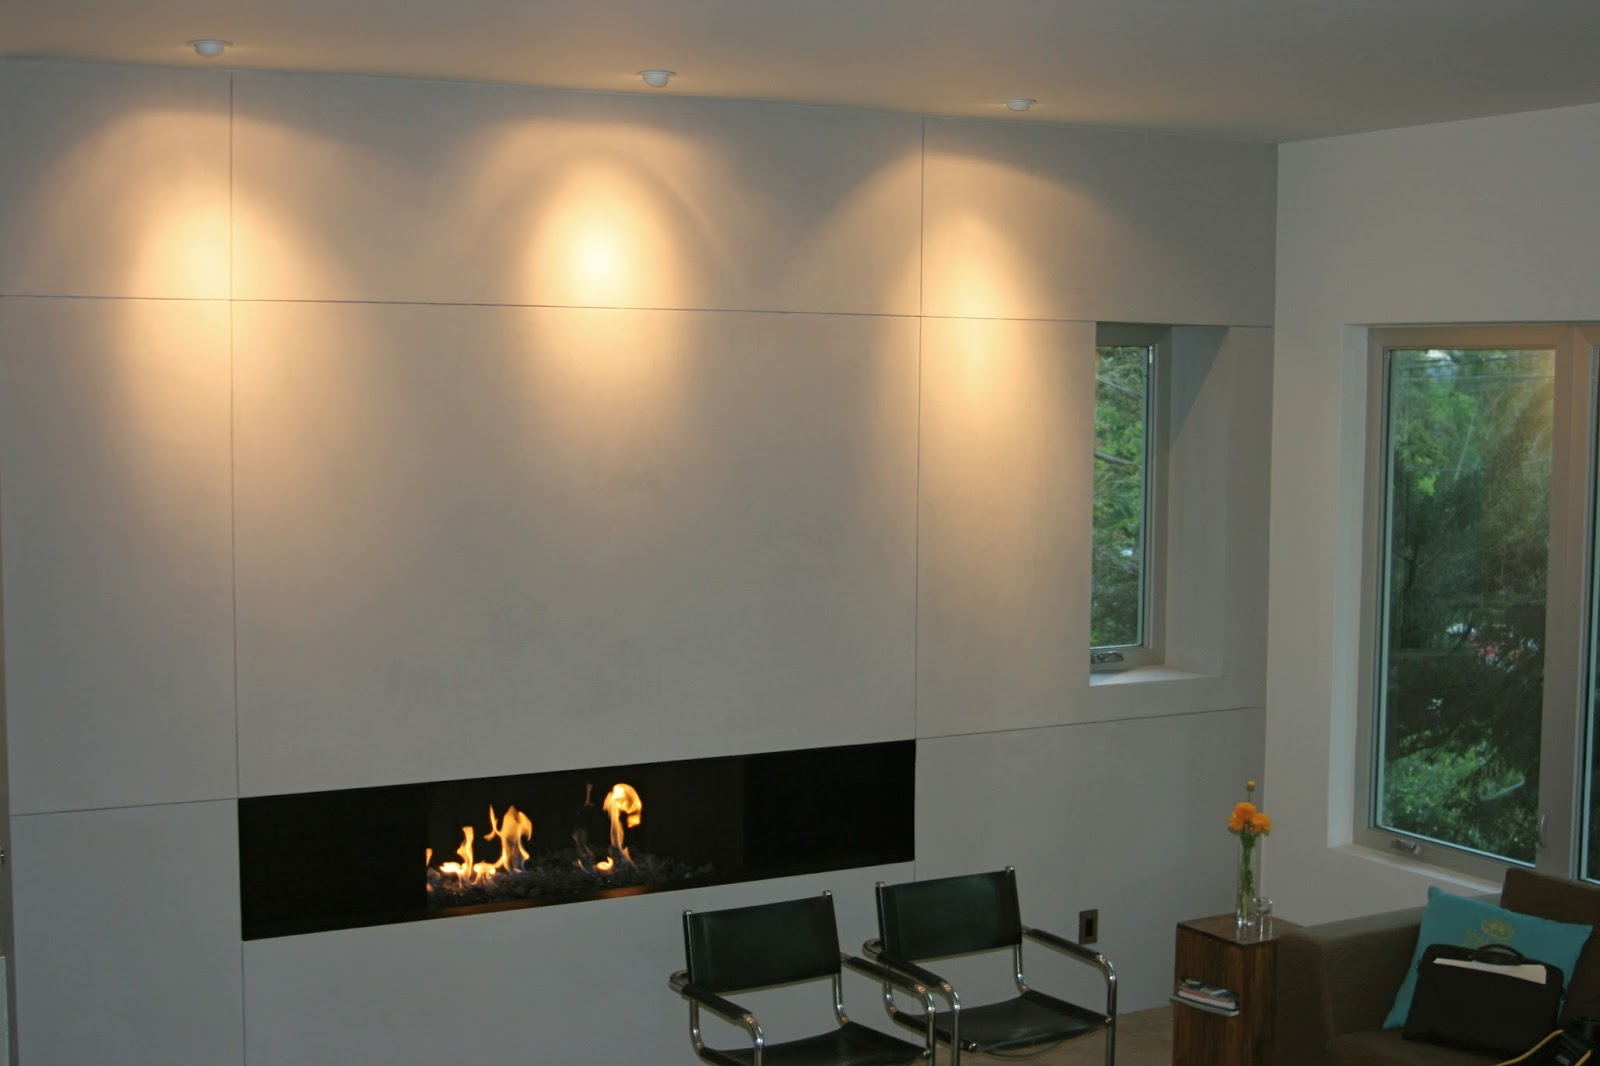 Gesso Liso